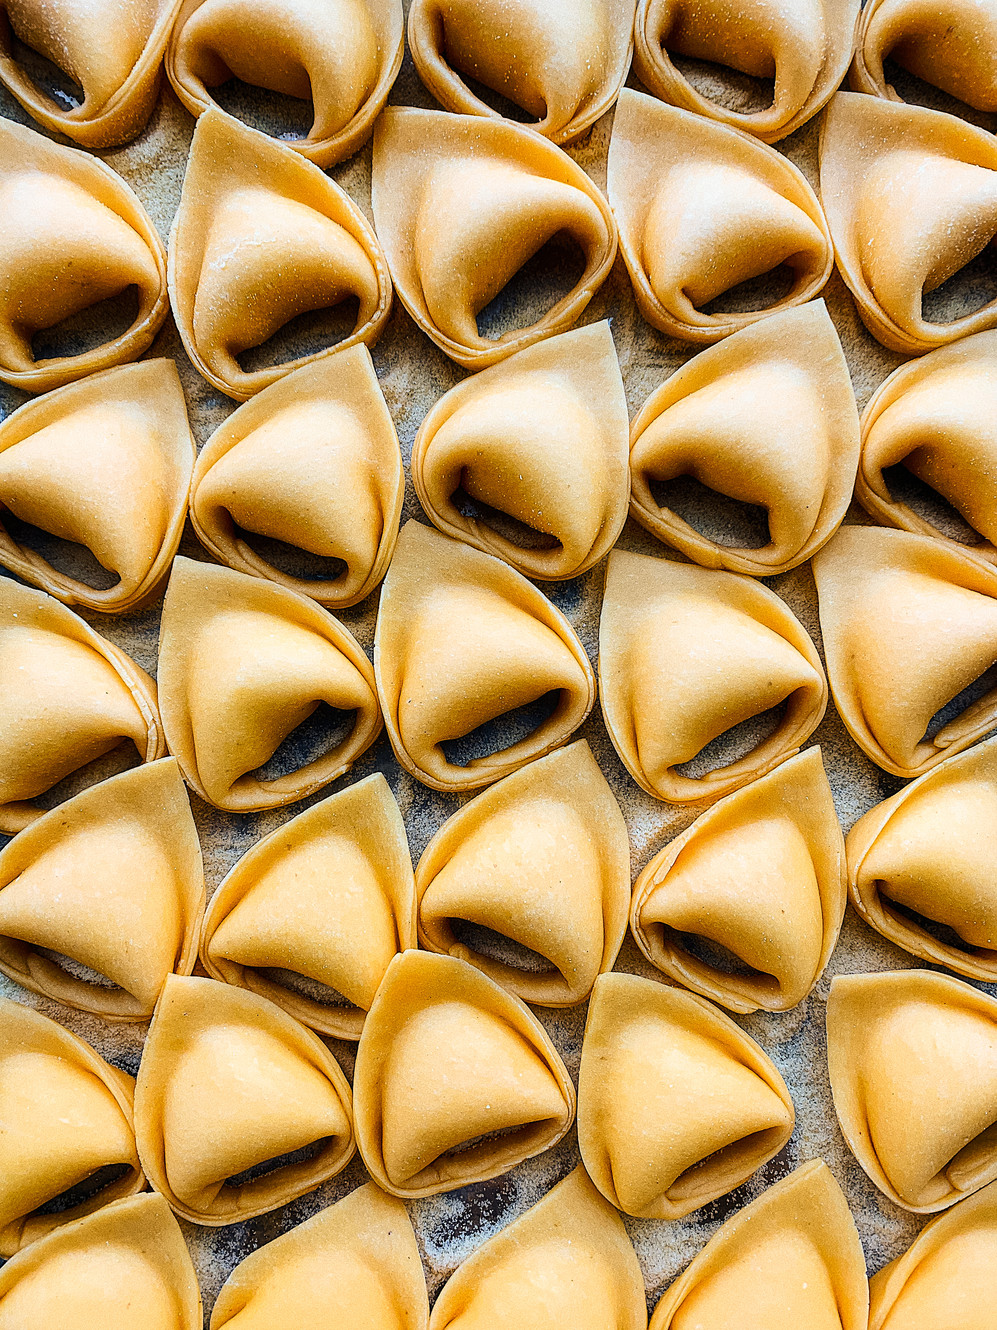 If you're looking for new ways to connect with family and friends, how about a pasta class?